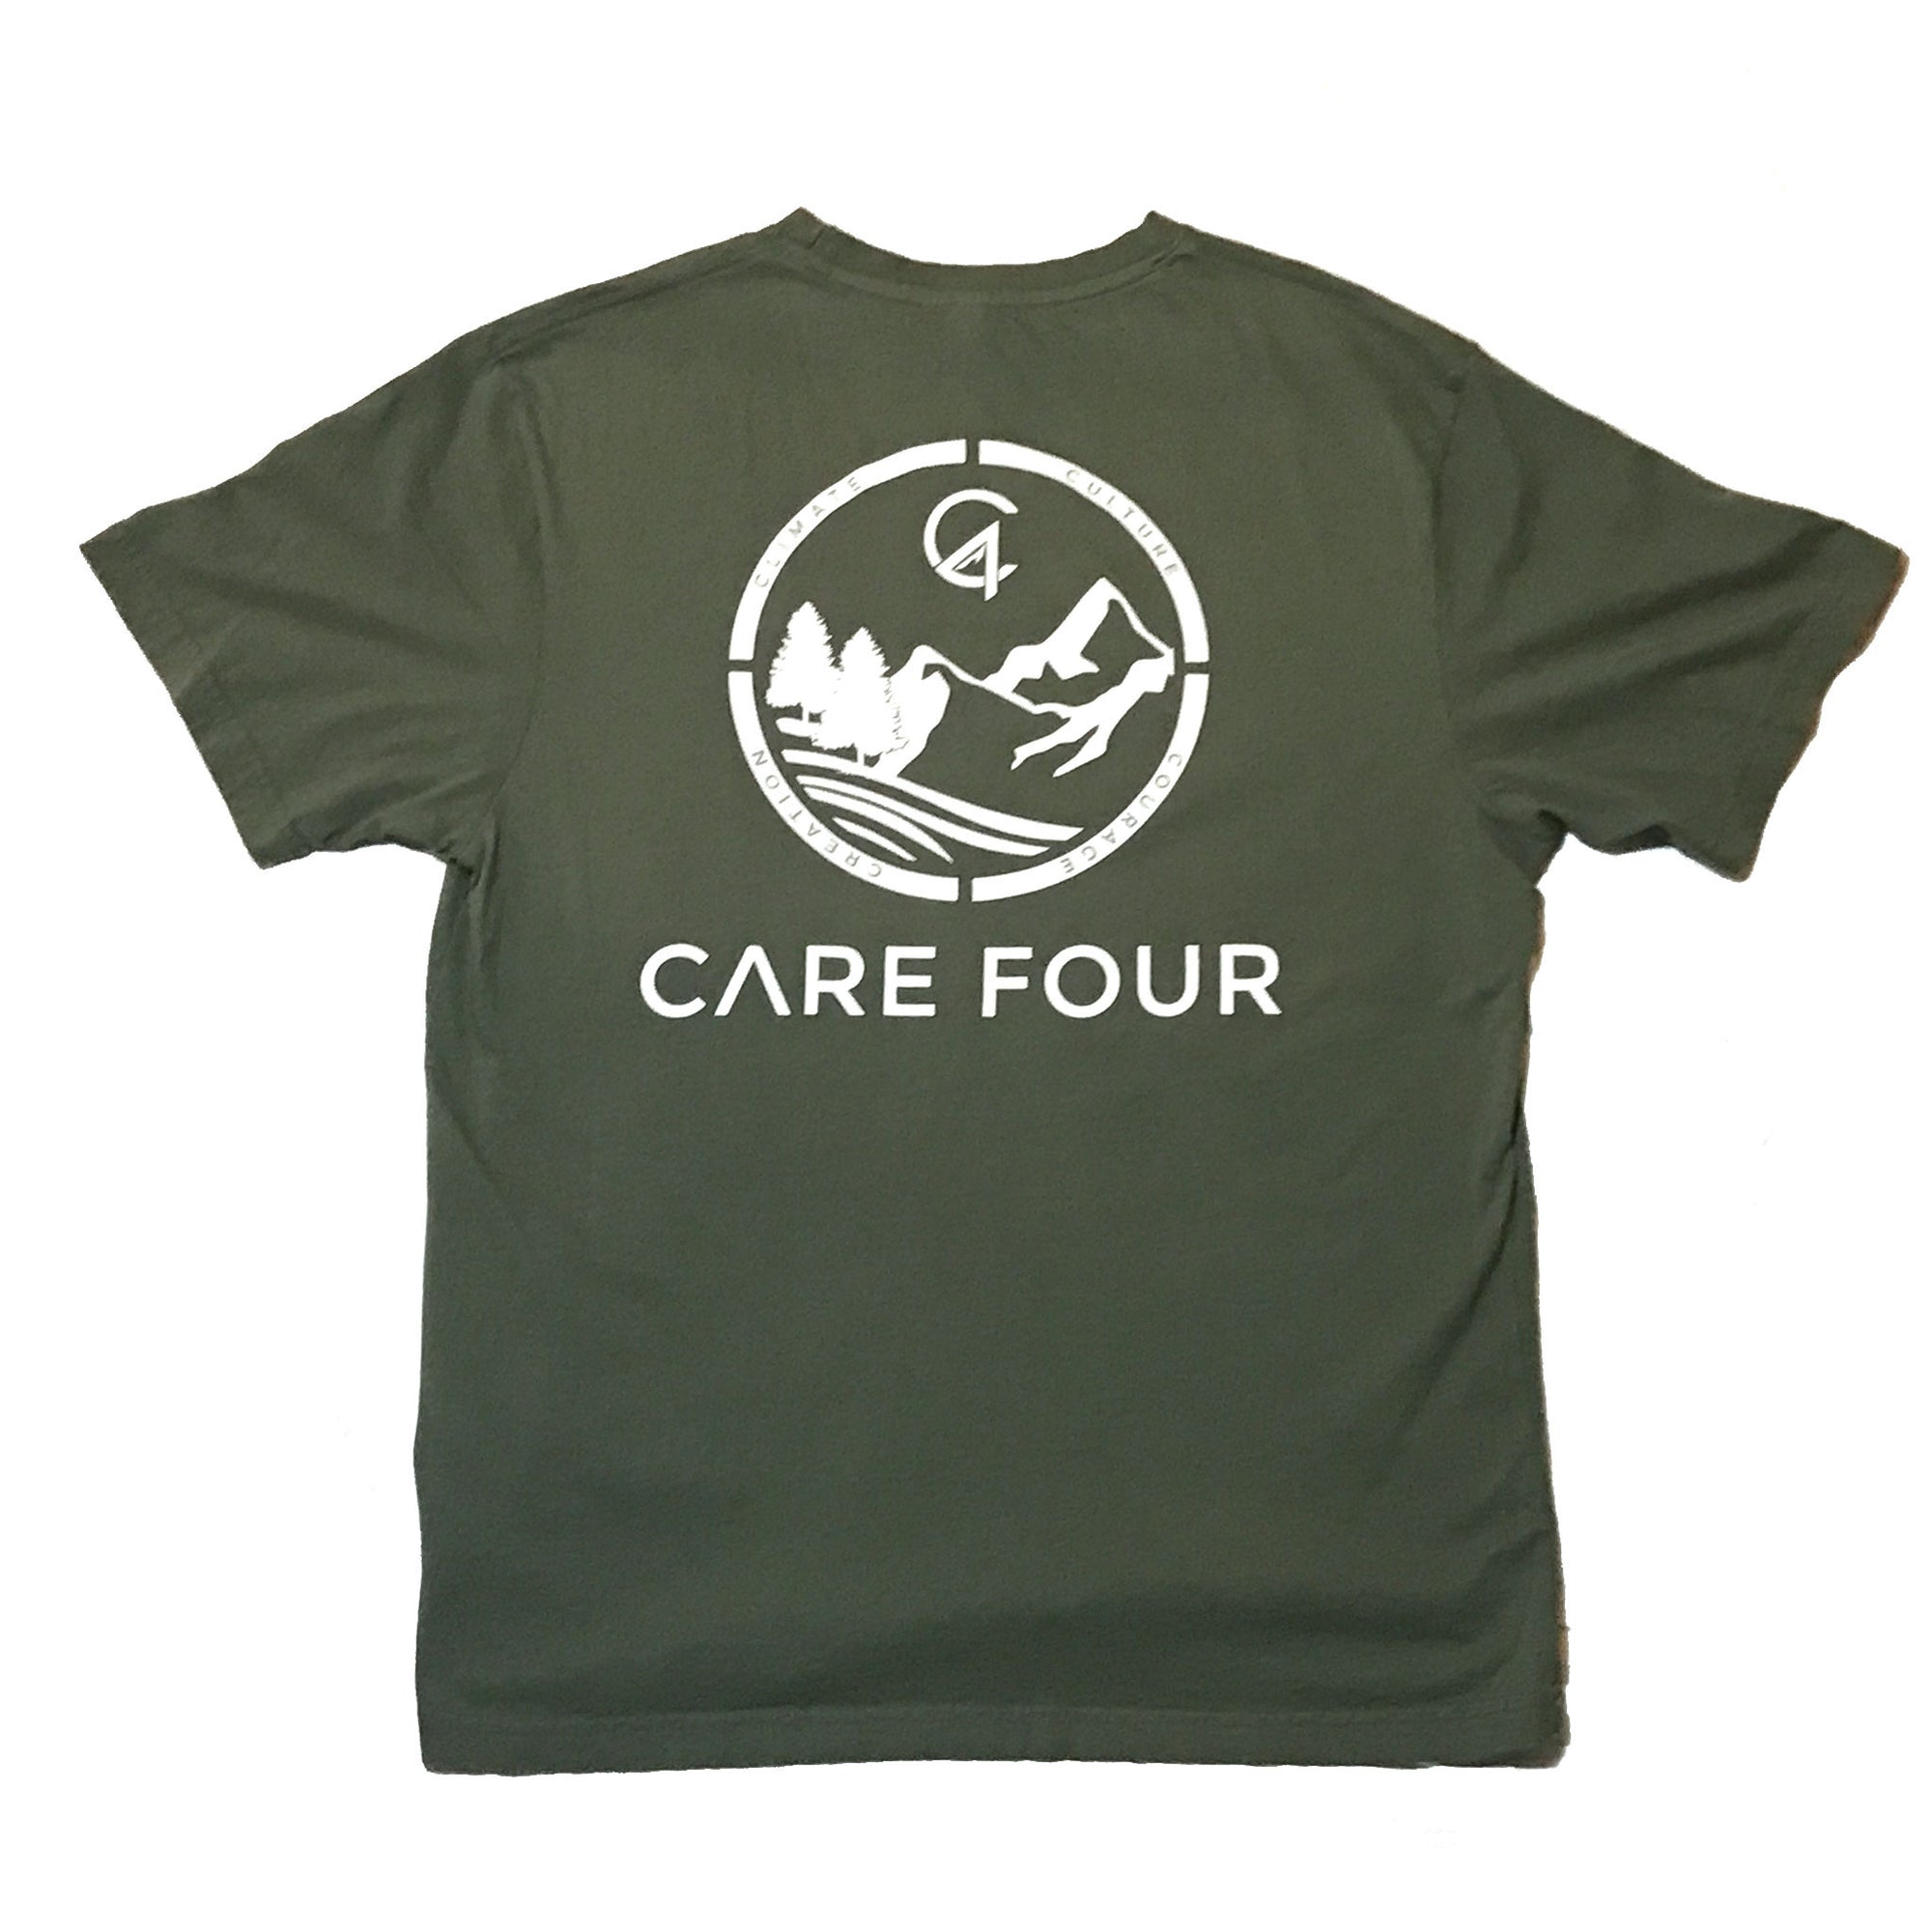 Army Green C4 Copacetic Short Sleeve Shirt - Care Four